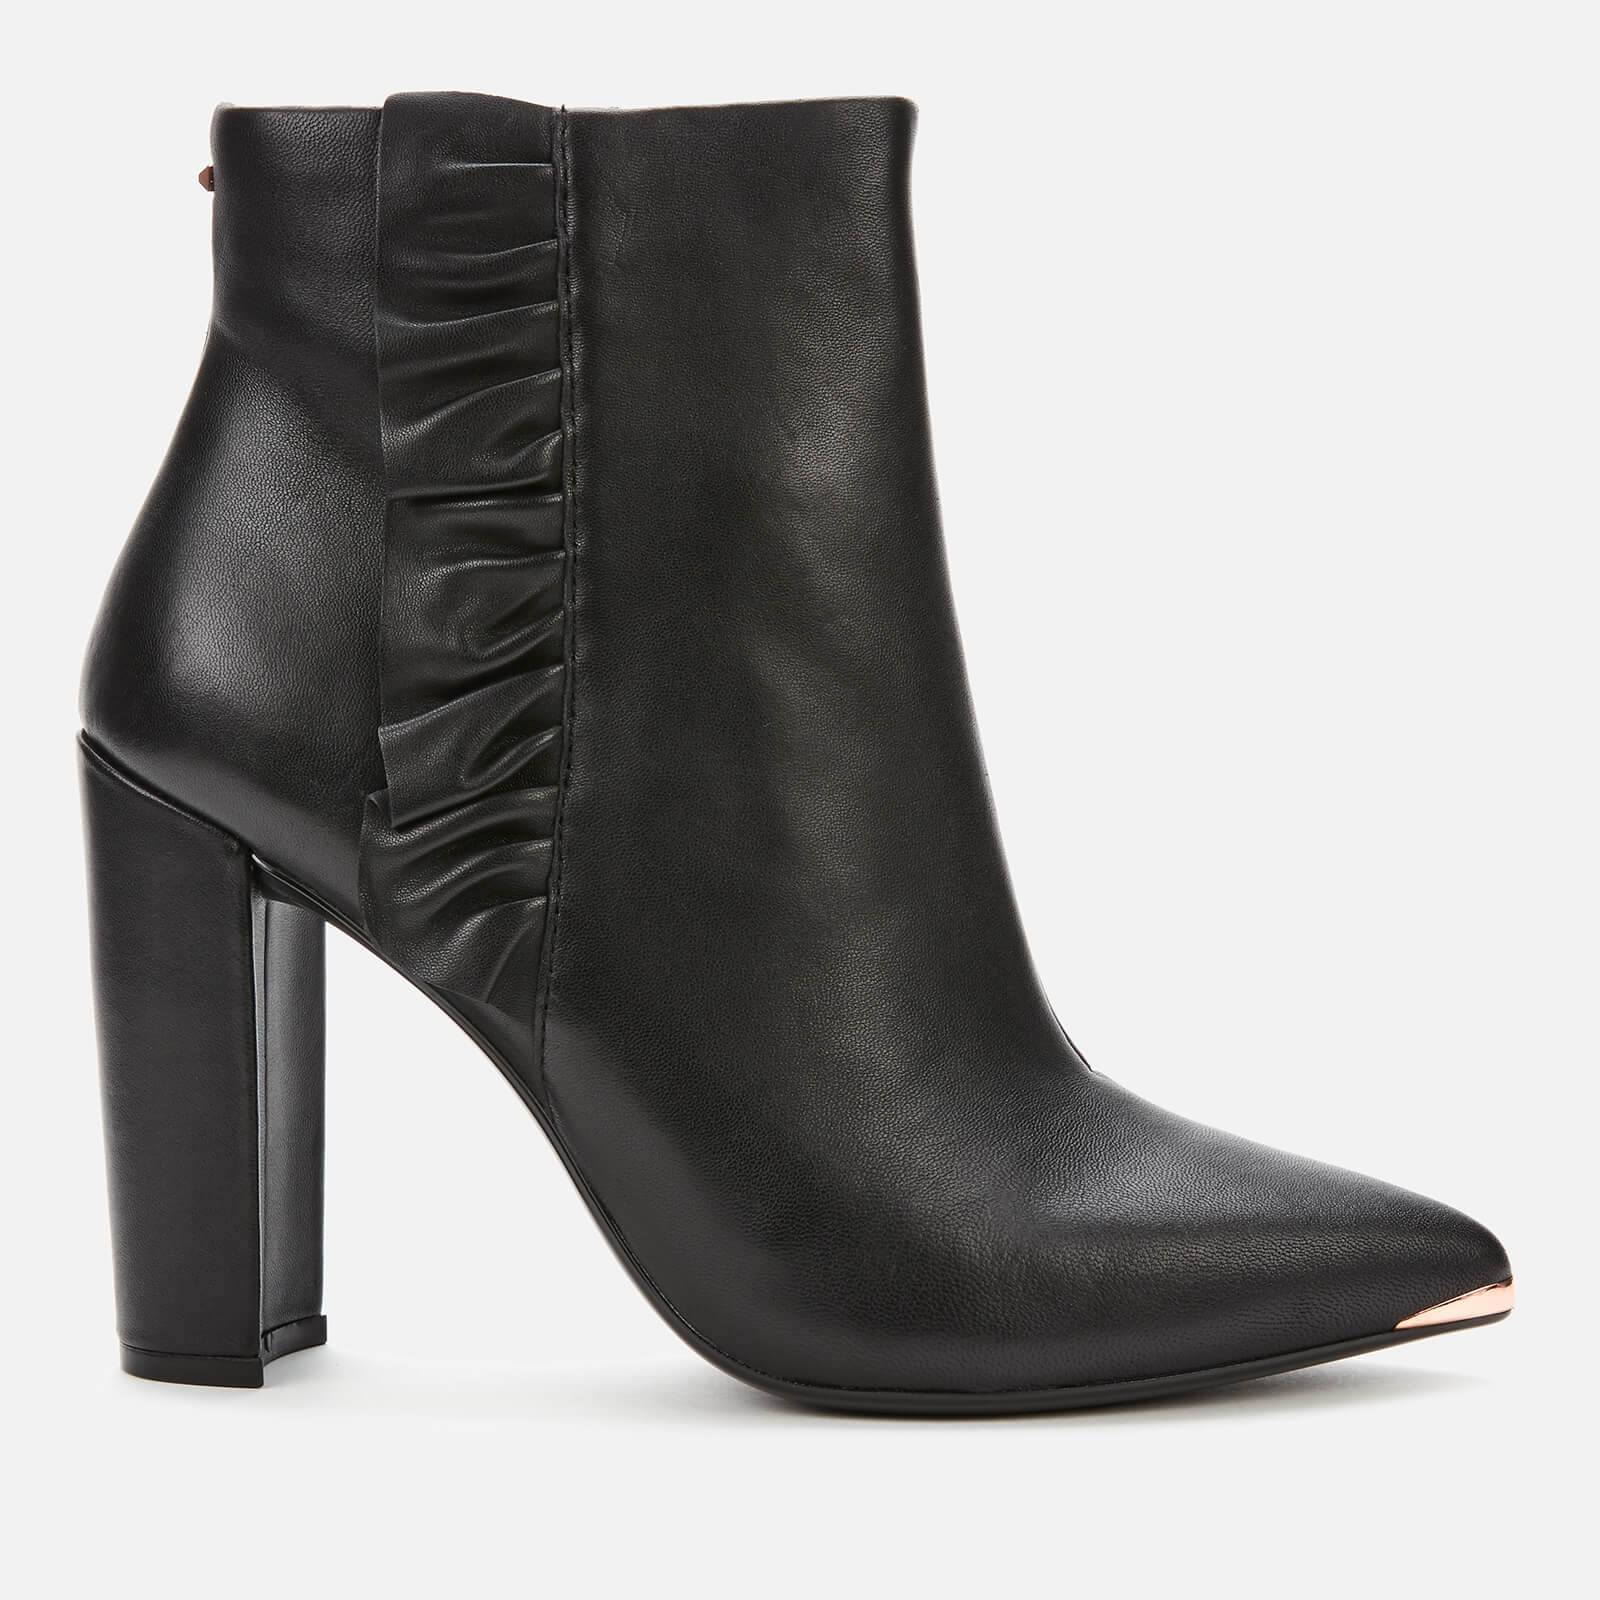 Ted Baker Women's Frillil Leather Ankle Boot - Black - UK 4